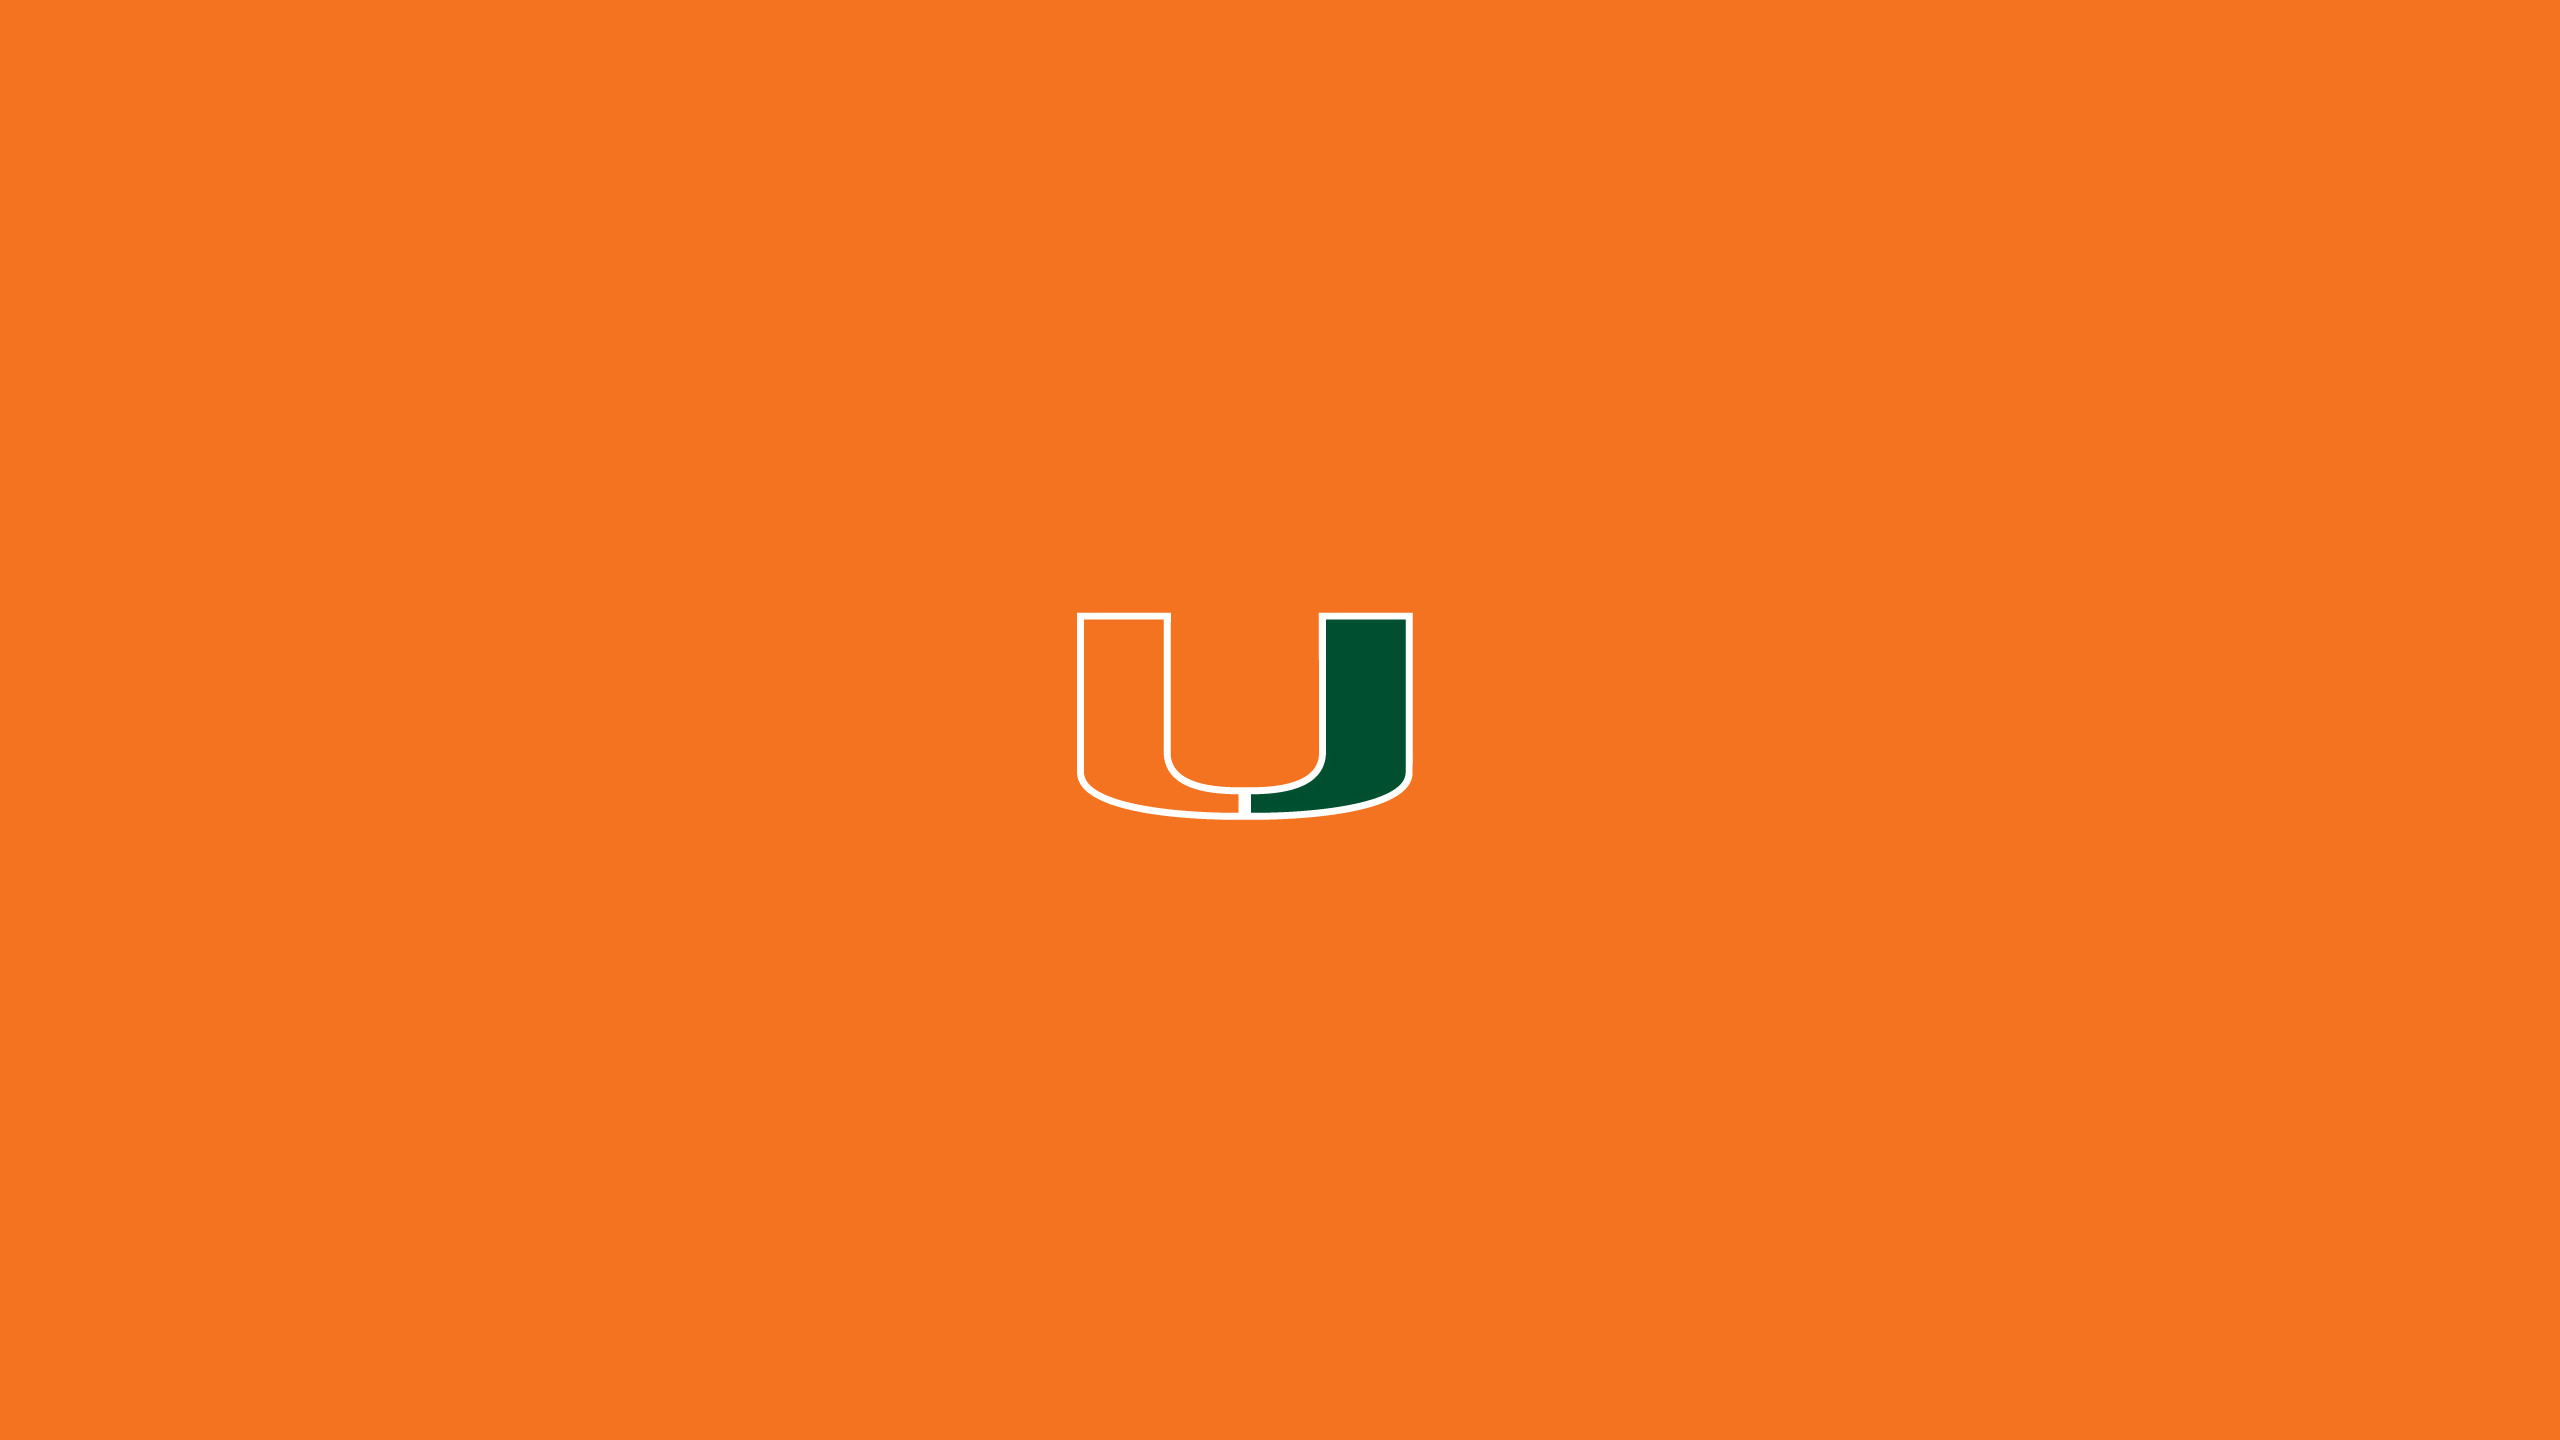 University Of Miami Hurricanes >> University of Miami Wallpaper ·①